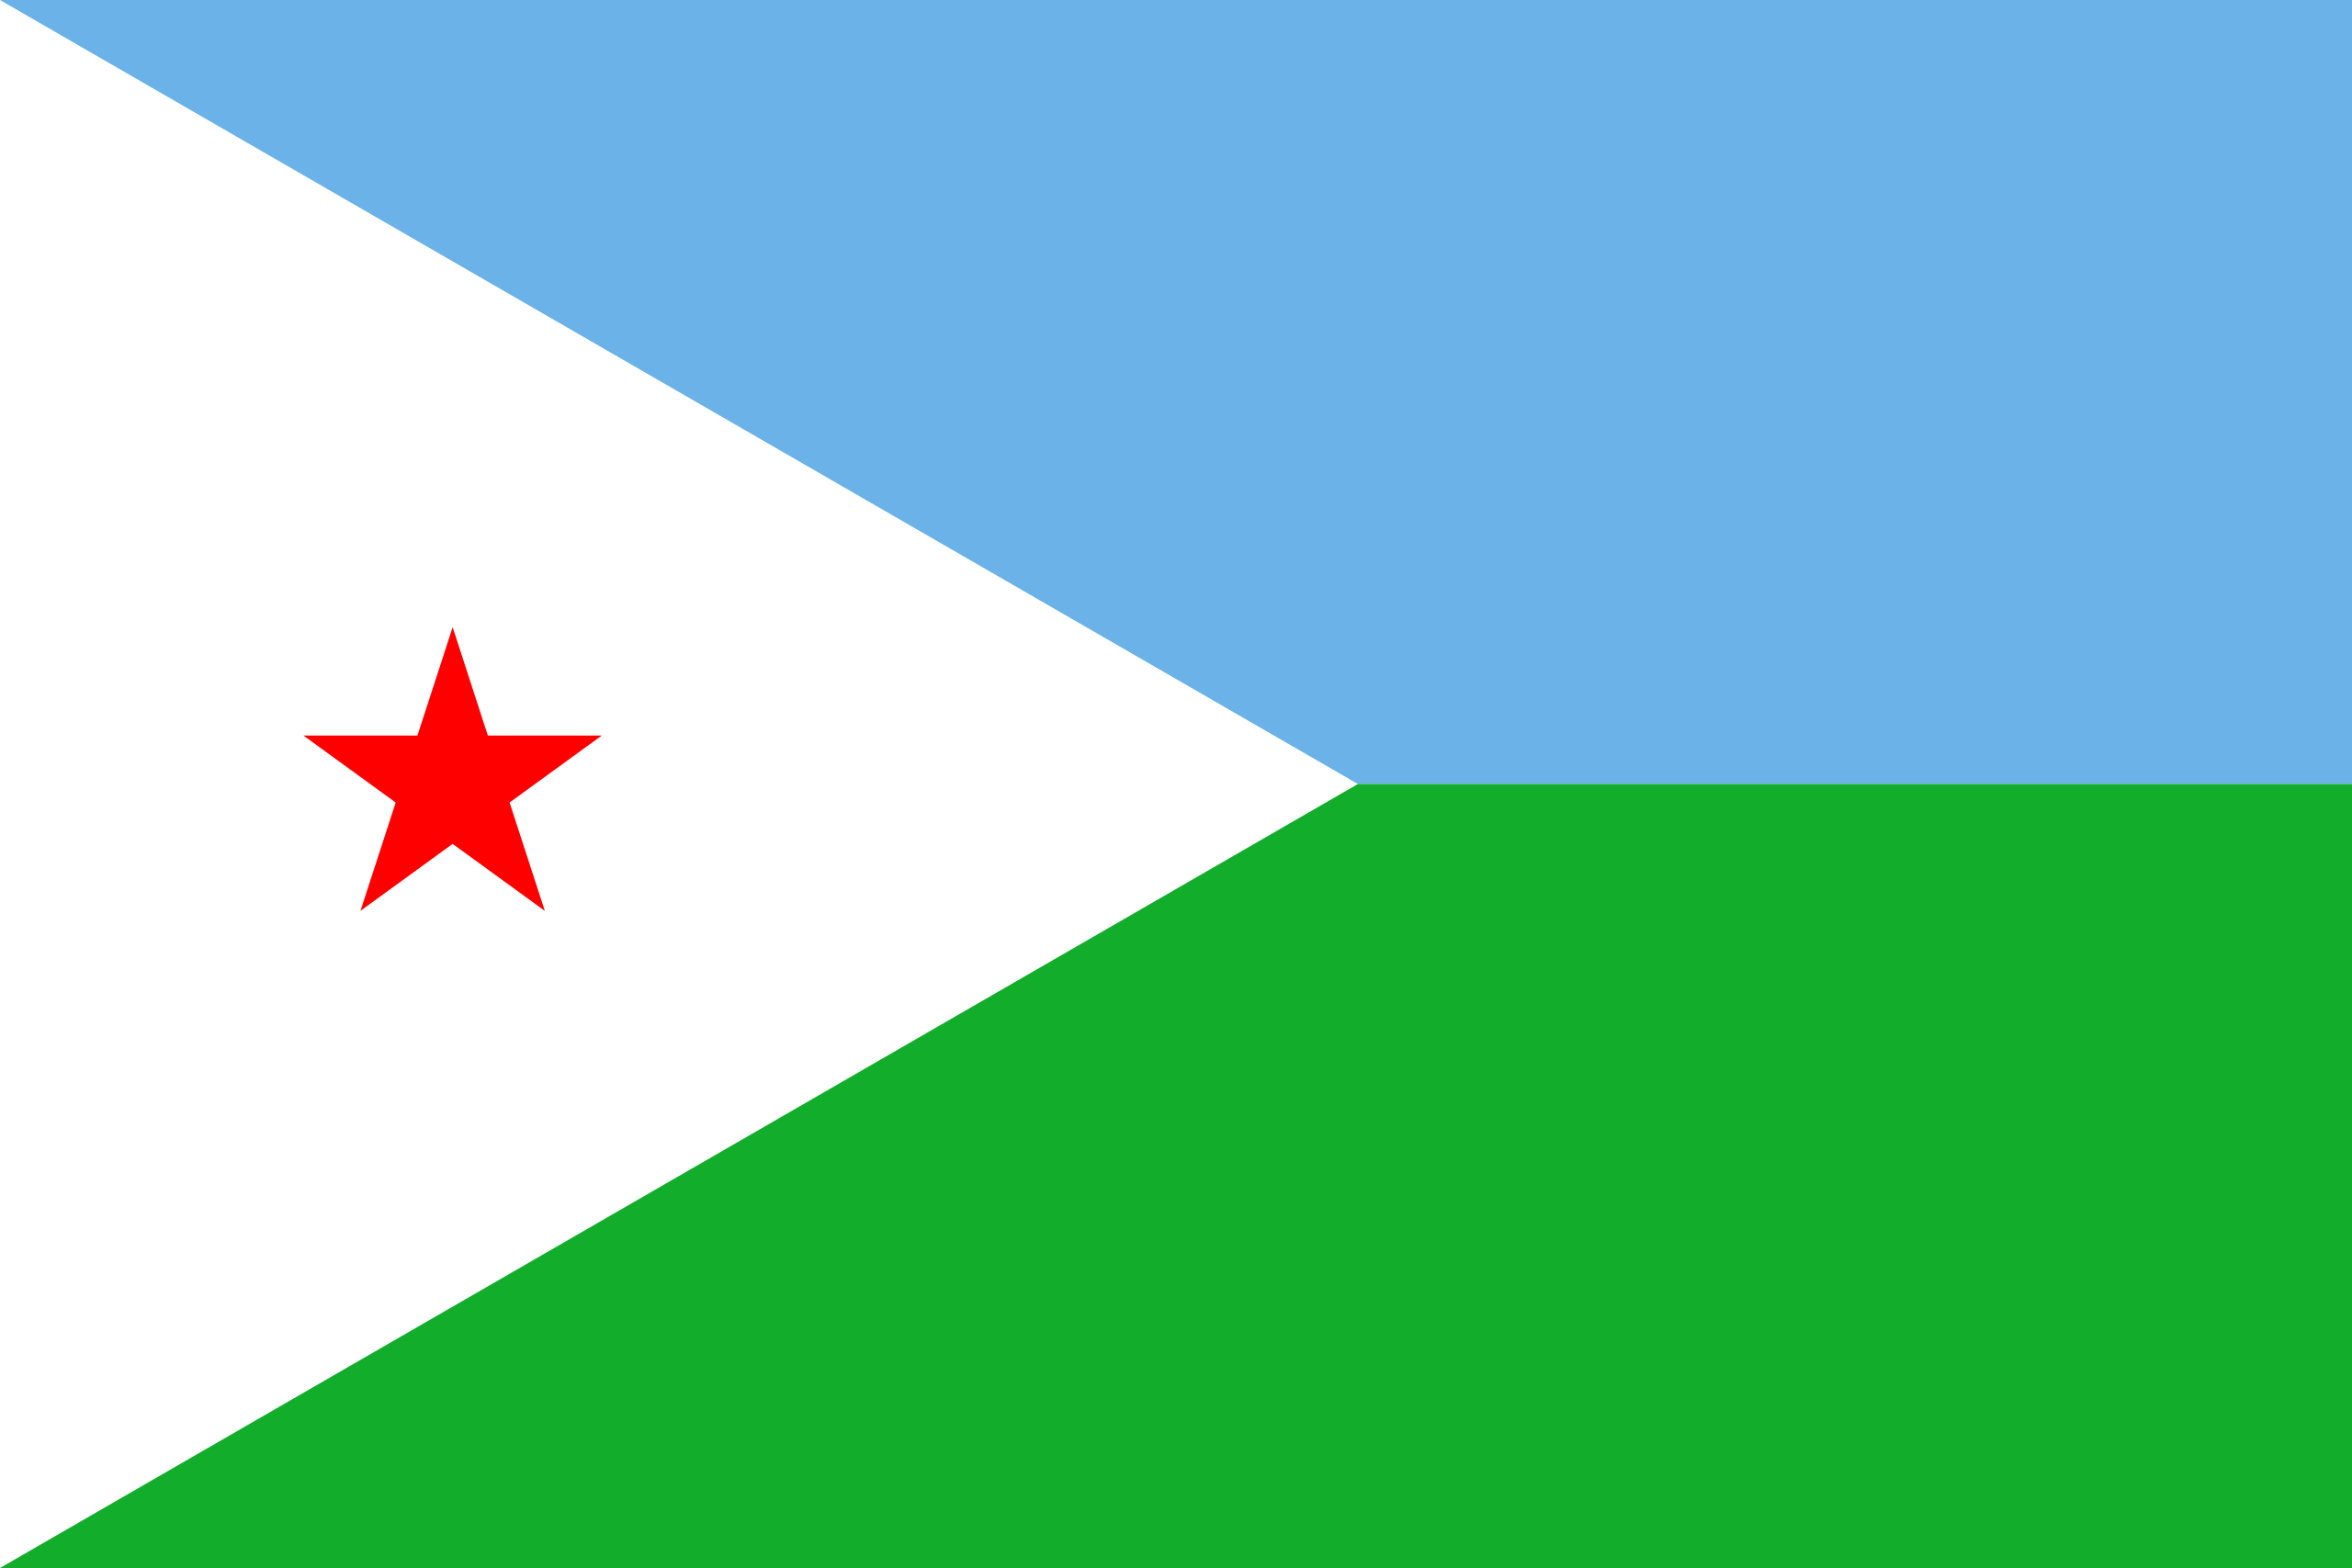 EMBASSY AND CONSULATE OF DJIBOUTI